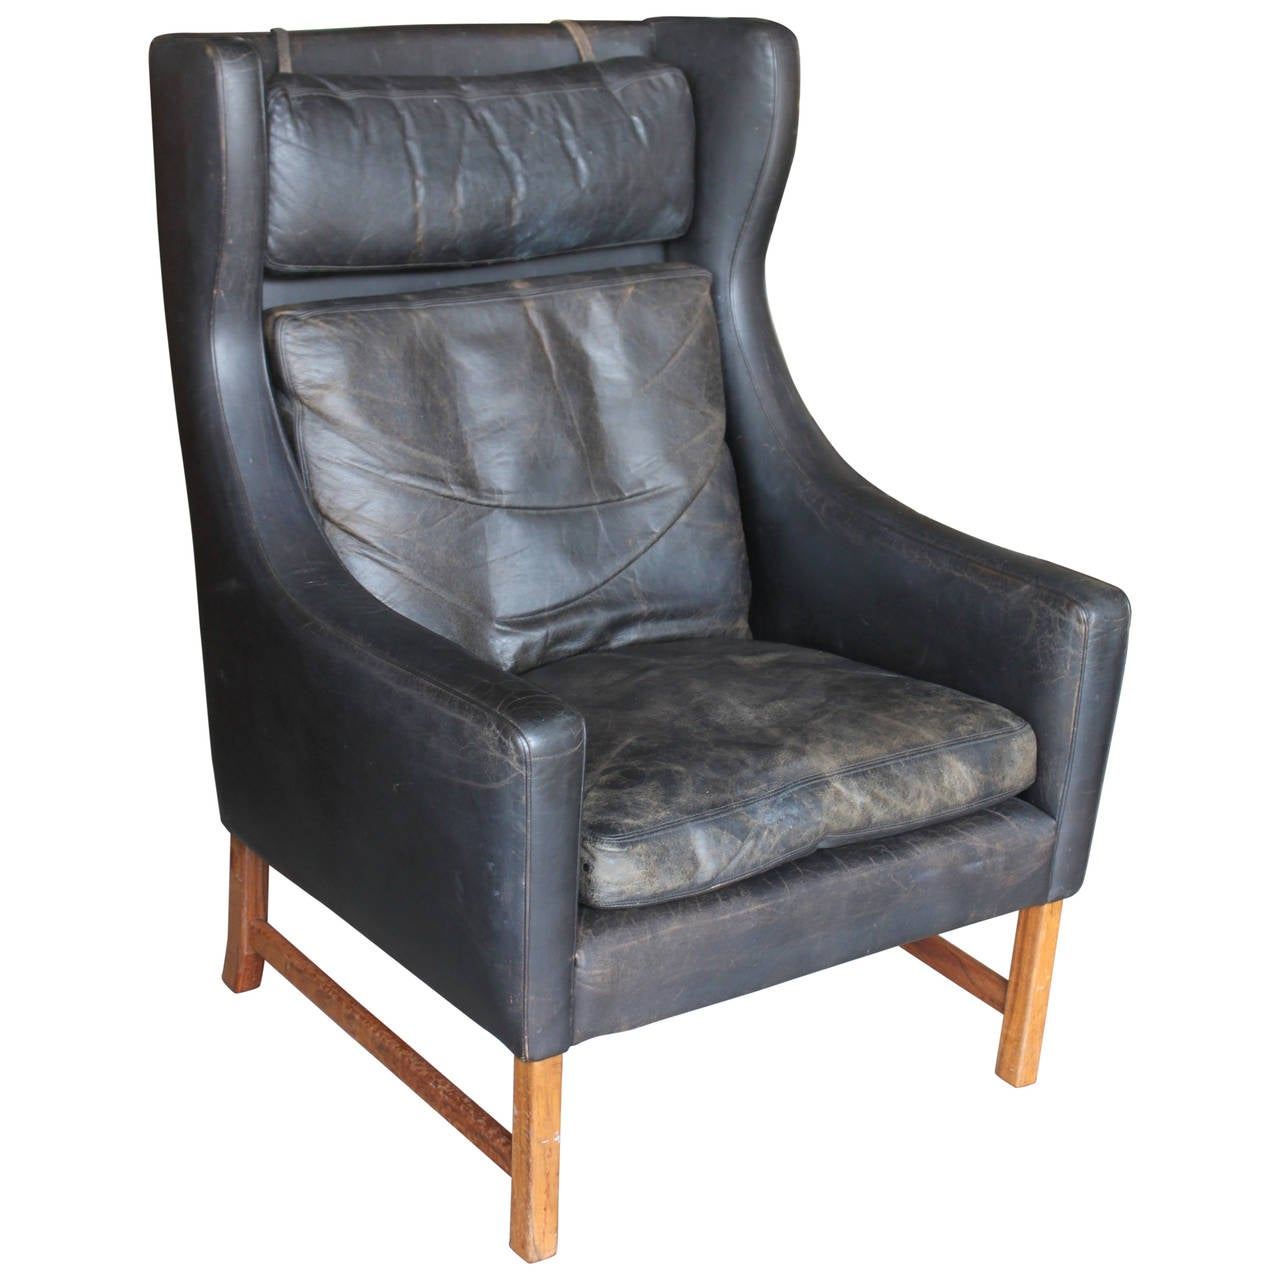 Leather Wing Back Chair Vintage Norwegian Leather Wingback Chair At 1stdibs